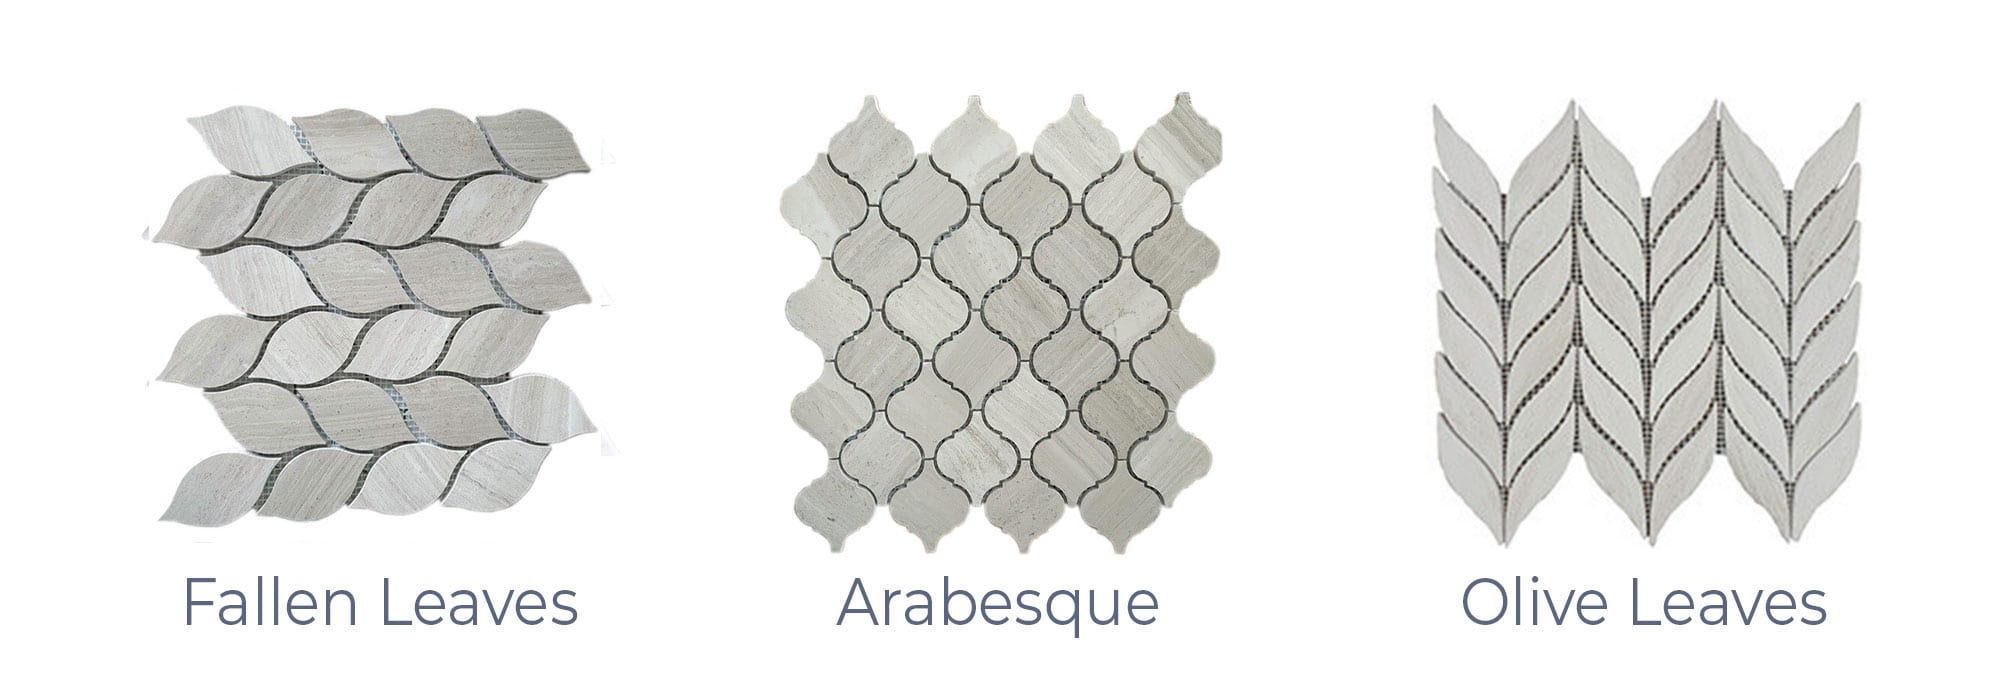 Stoneline-Group-White-Wood-Marble-Collection-Marble-Mosaic-varieties-Fallen-Leaves-Arabesque-Olive-Leaves-Pictures